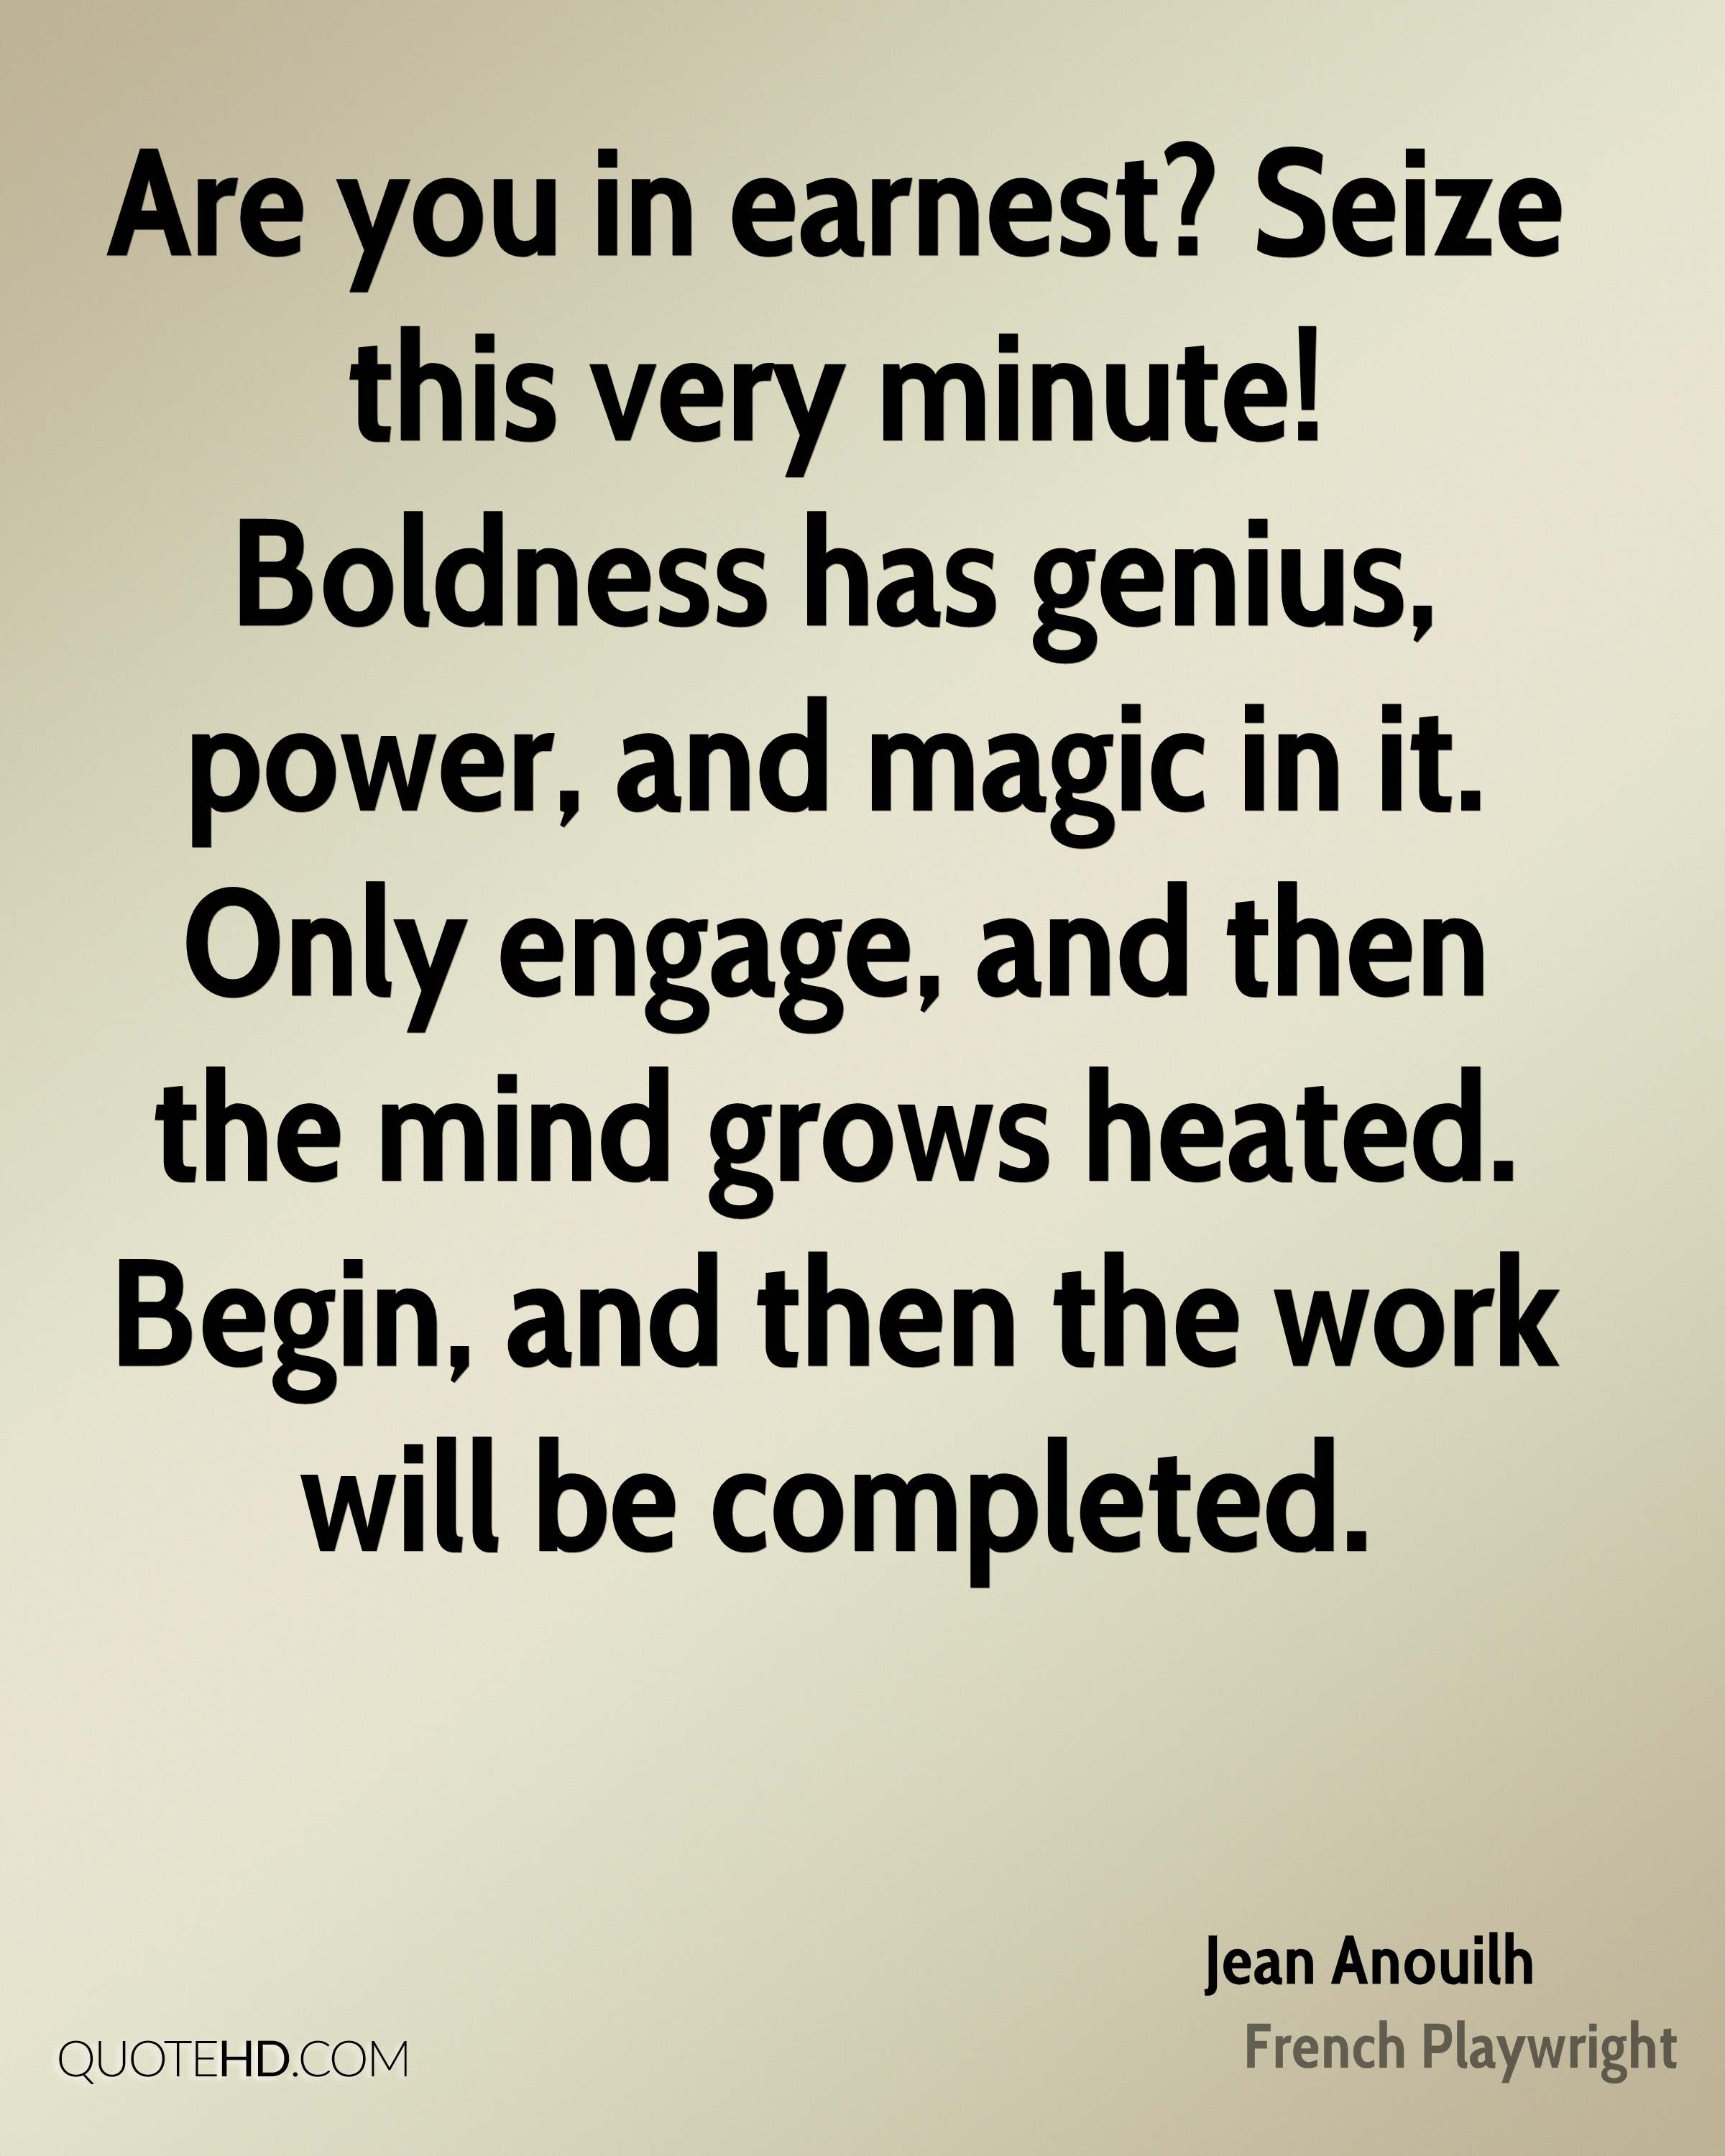 Are you in earnest? Seize this very minute! Boldness has genius, power, and magic in it. Only engage, and then the mind grows heated. Begin, and then the work will be completed.